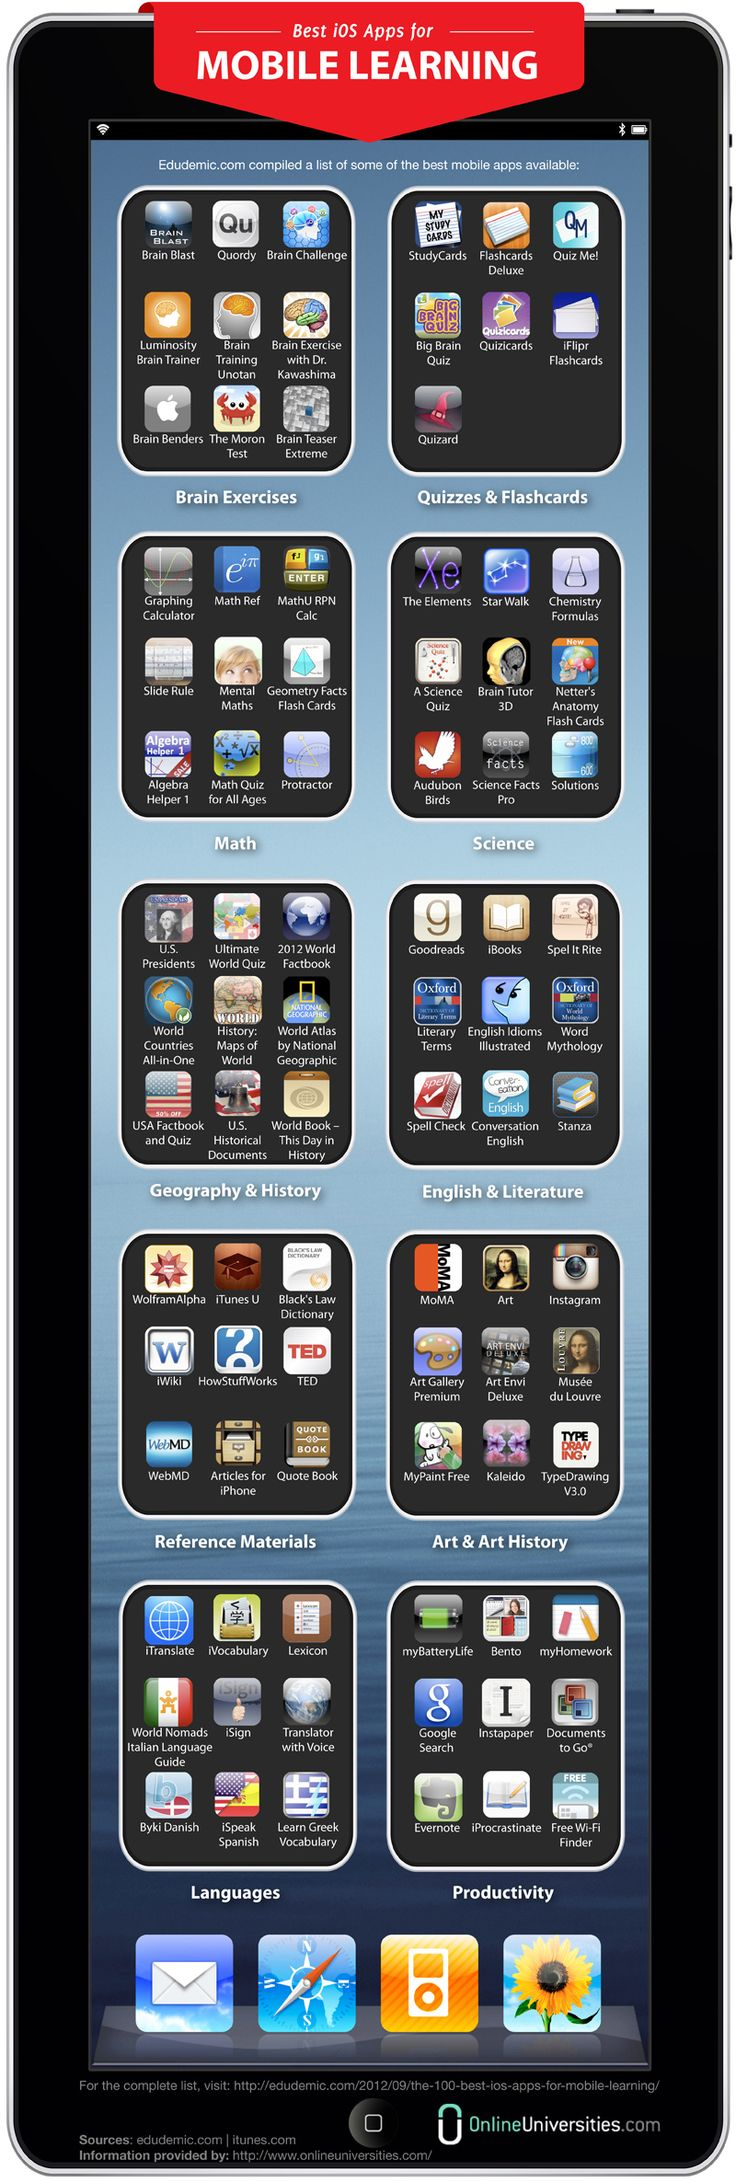 Best IOS APPS for mobile learning #infographic